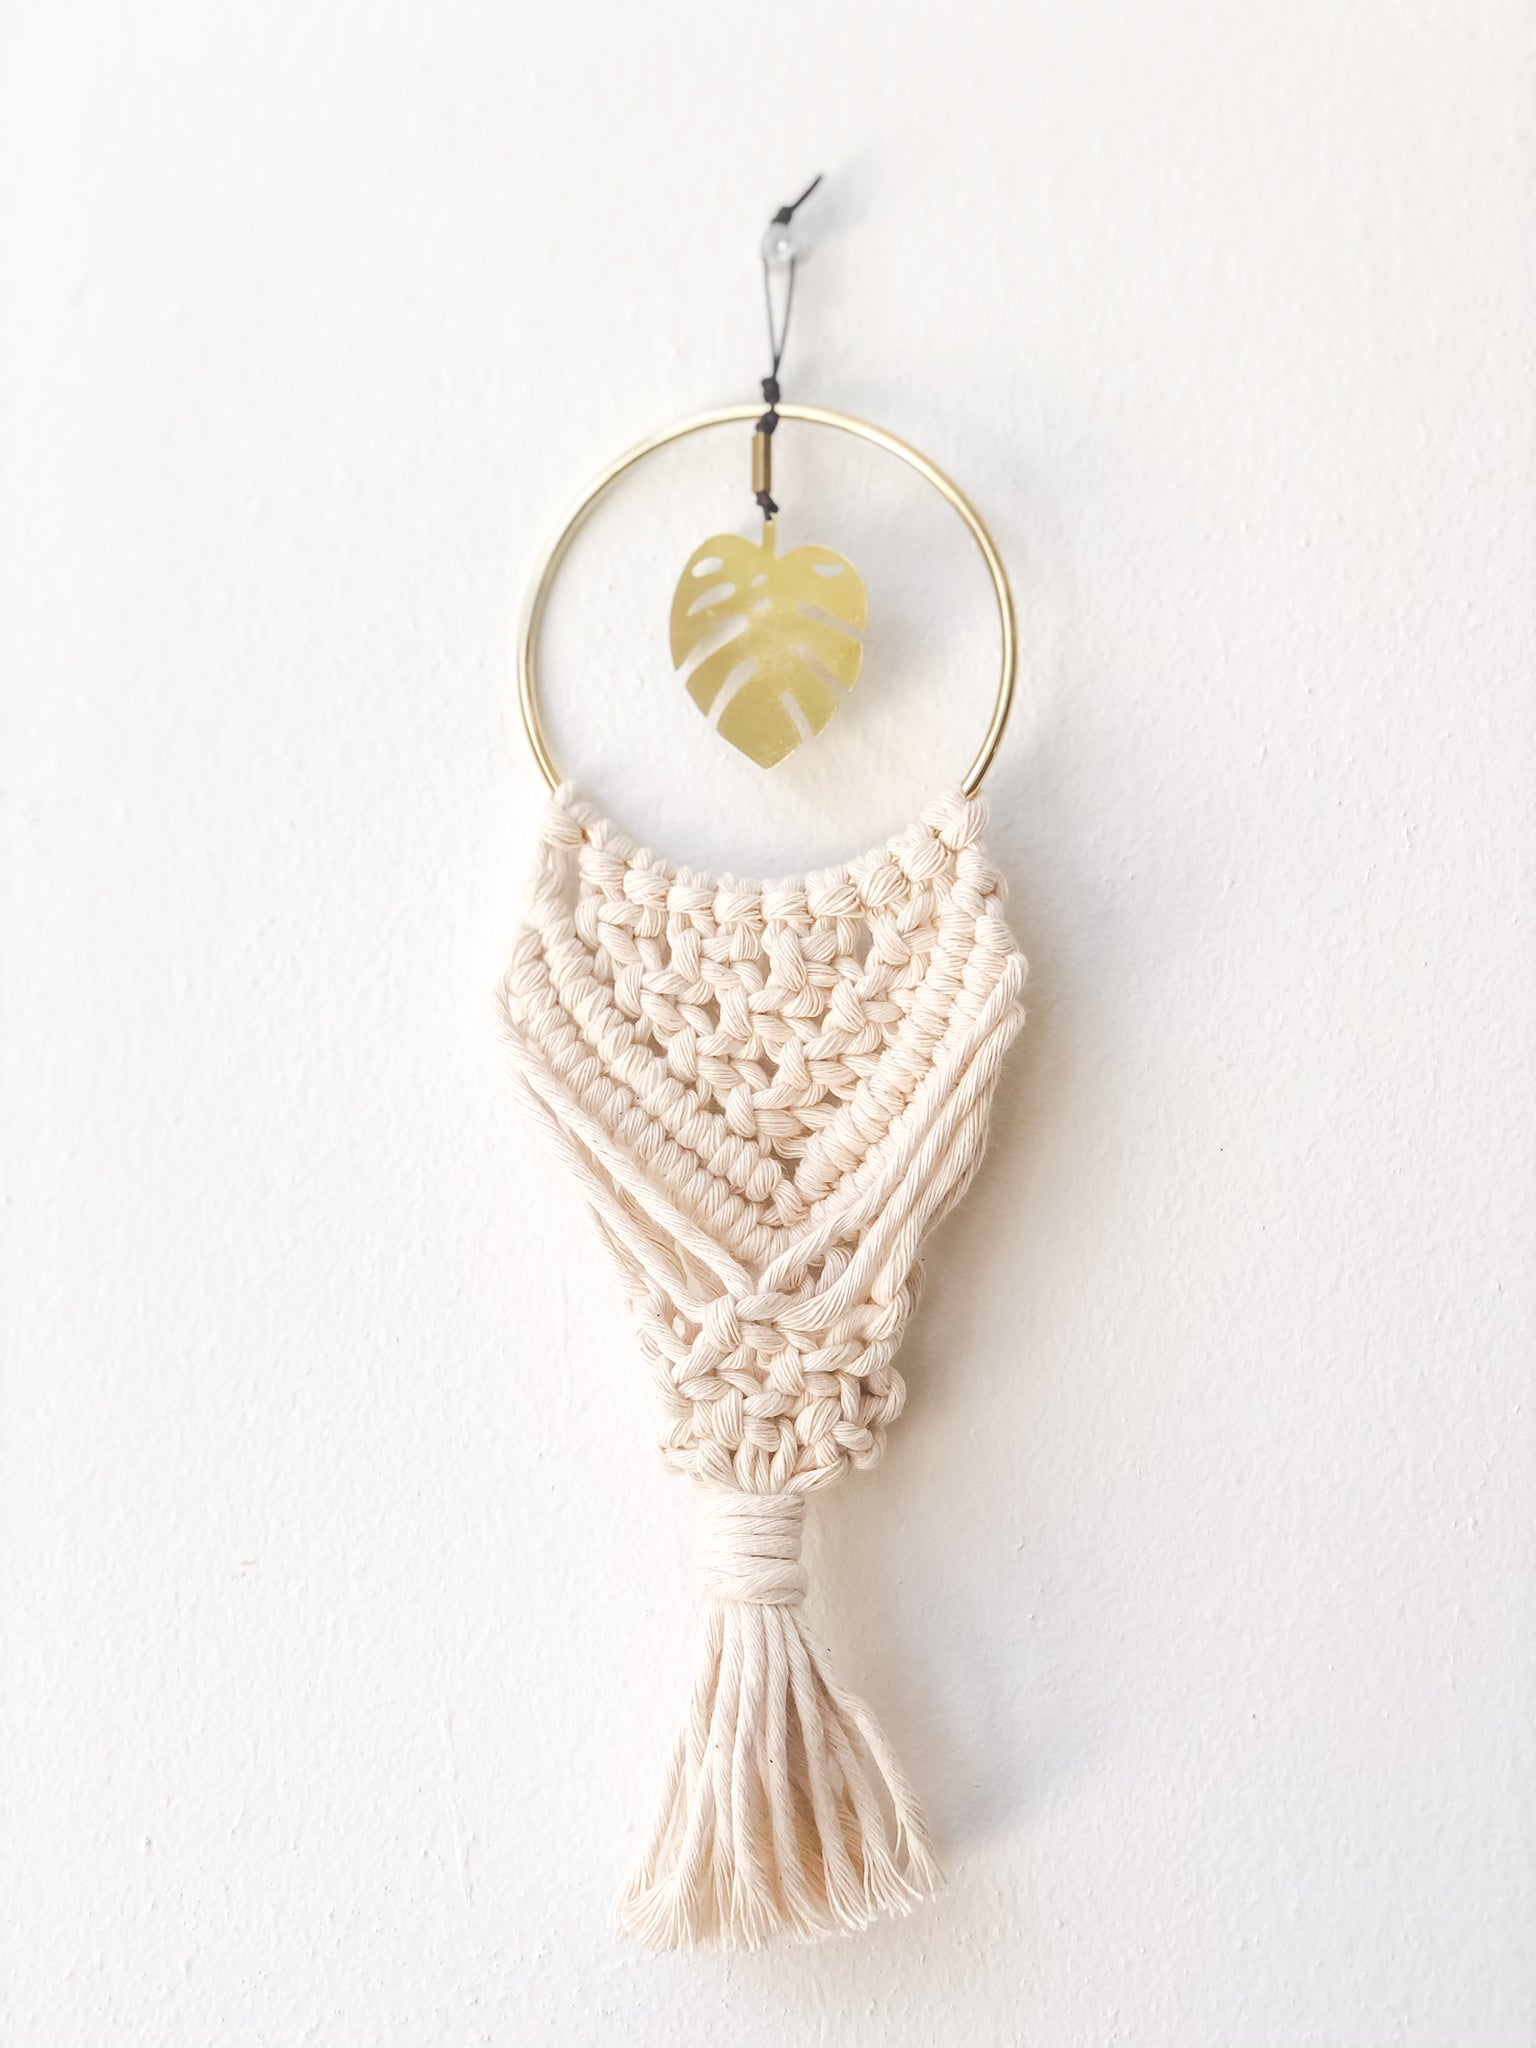 BonnyBee Designs Macrame Air Plant Holder